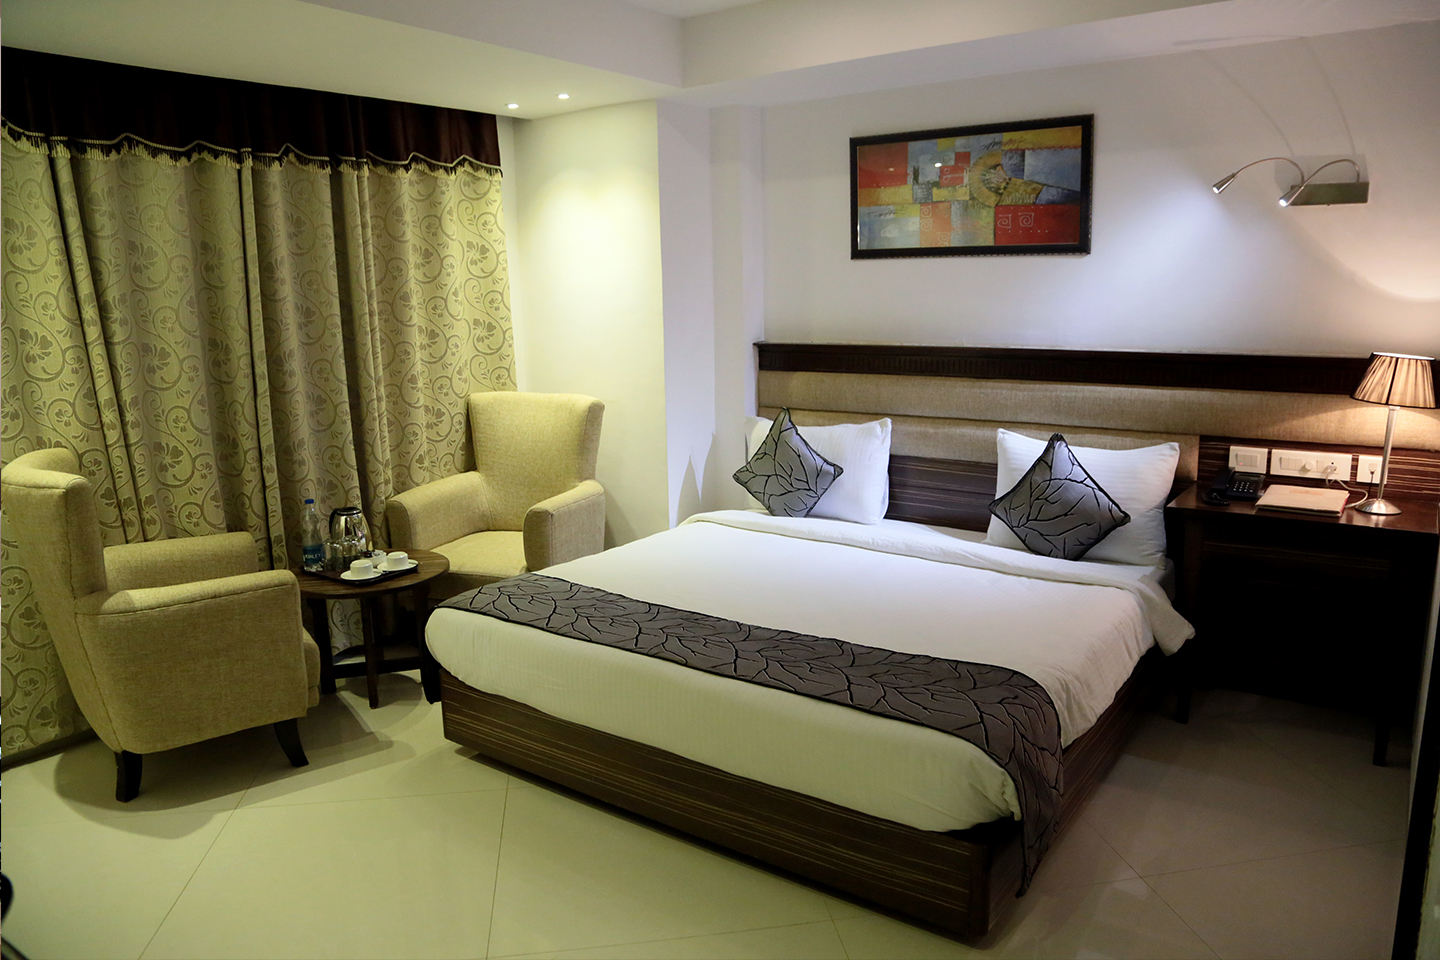 Image for 4 Star hotel in Lucknow